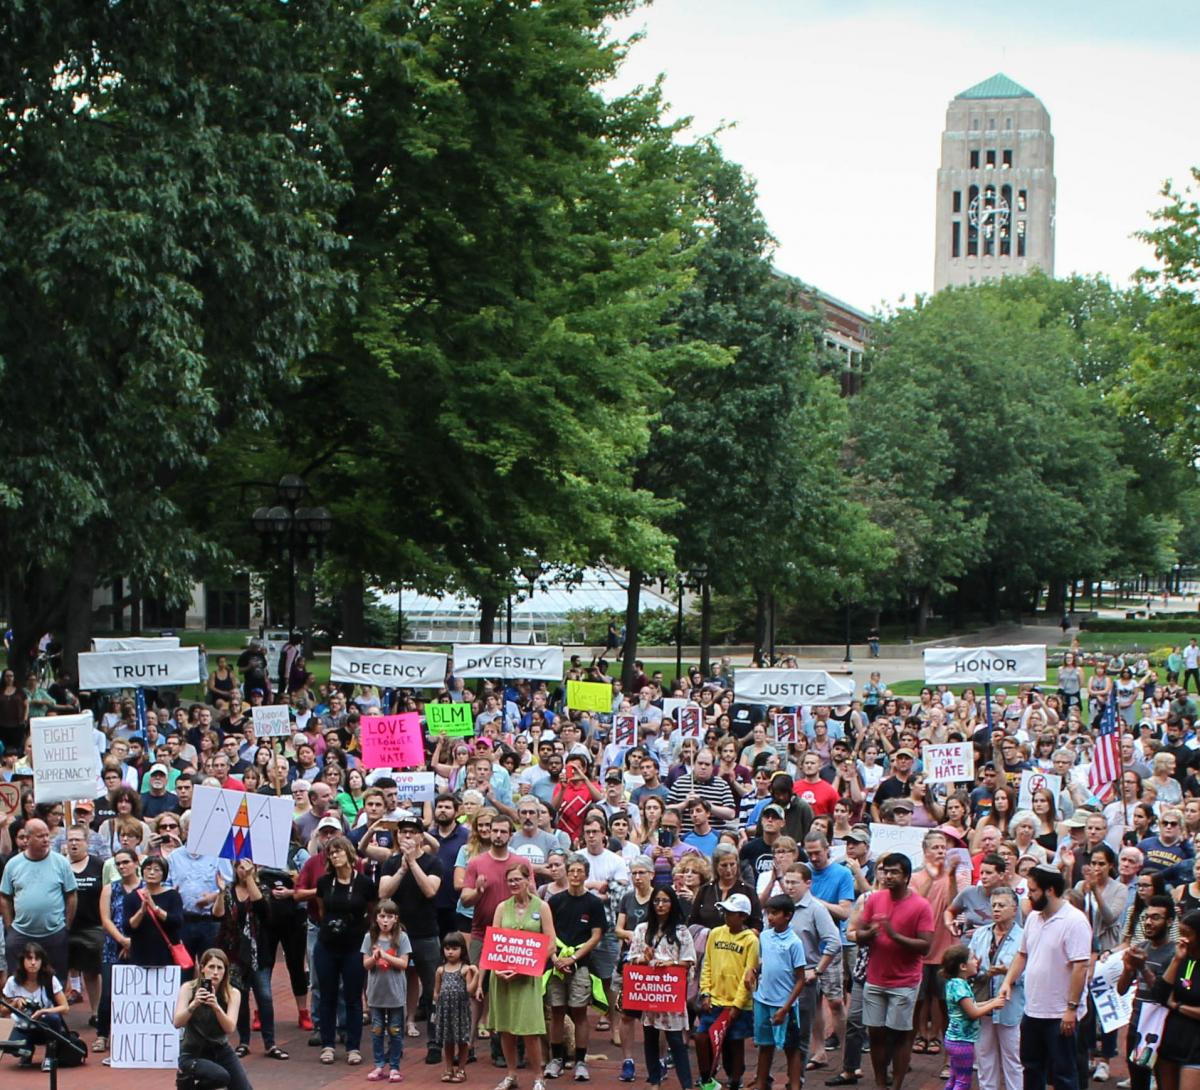 Crowd on Diag holding protest signs